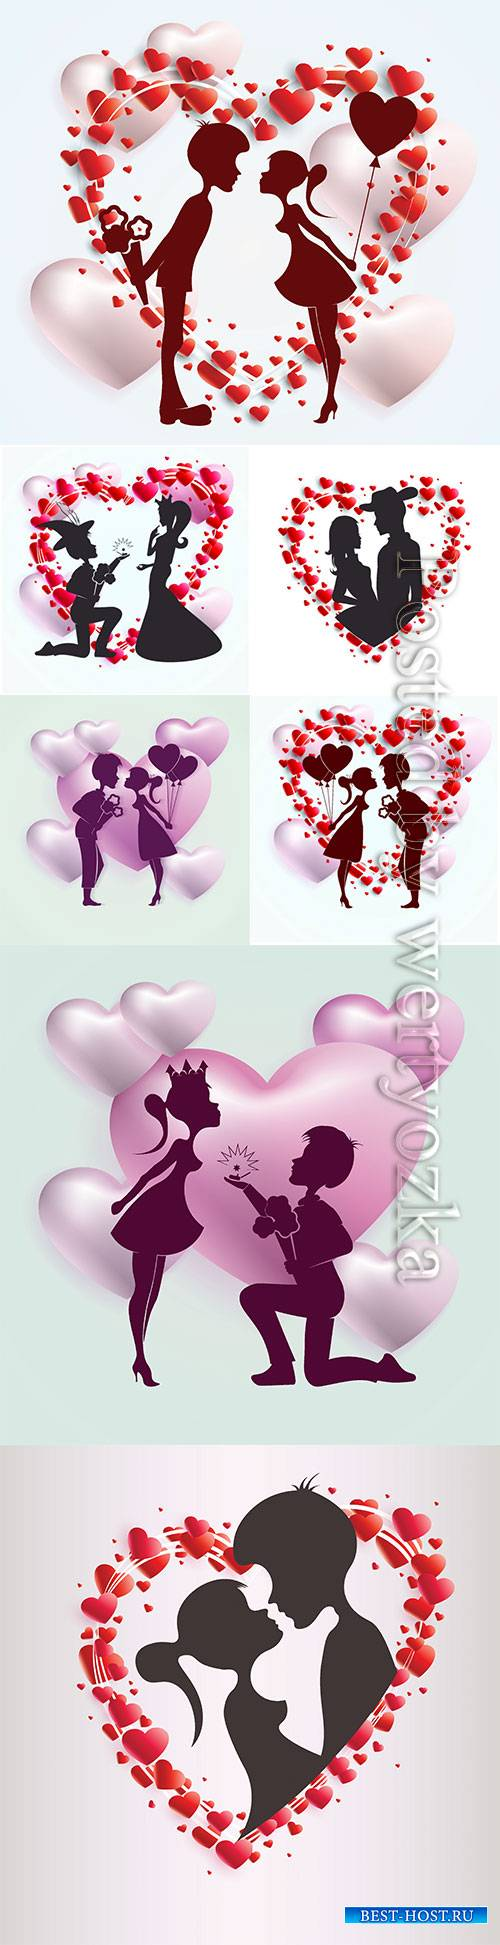 Happy Valentine's Day, vector hearts of couples in love